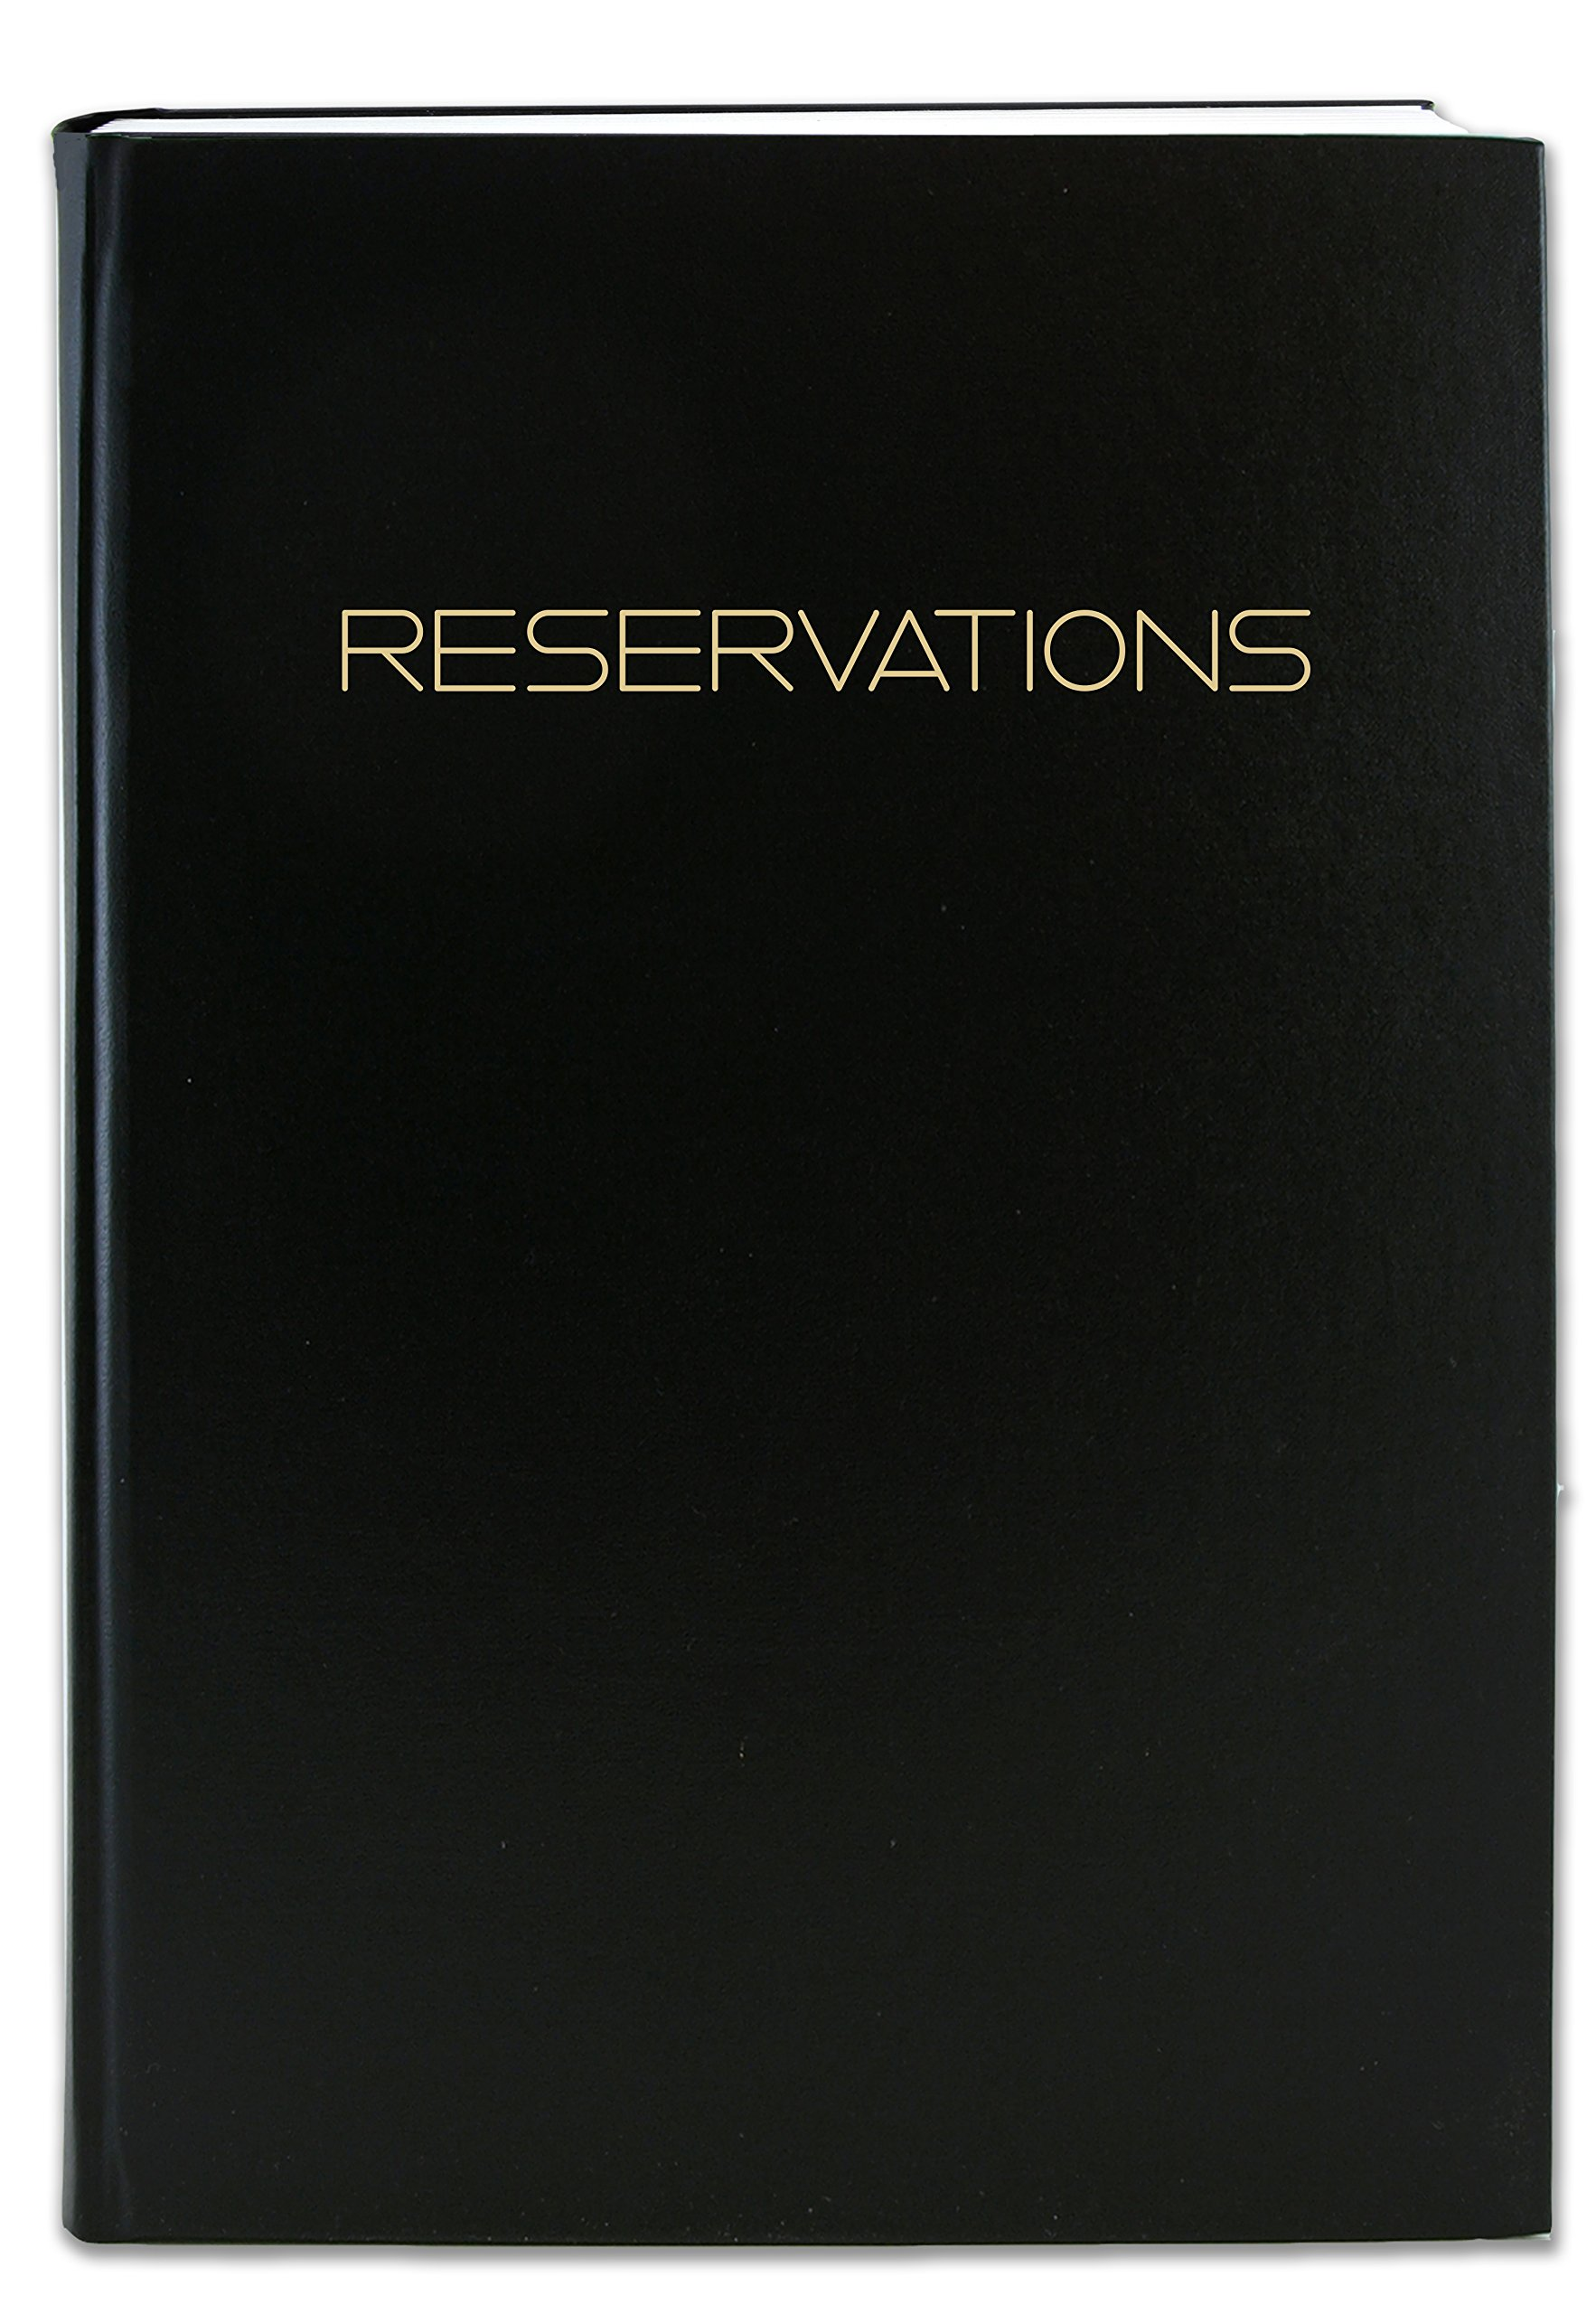 BookFactory Reservations Book, 365 Day Table Reservations, Restaurant Dinner Reservations 408 Pages, 8 7/8'' x 13 1/2'' Black Imitation Leather, Smyth Sewn Hardbound LOG-408-OCS-A-LKT79-(Reservations) by BookFactory